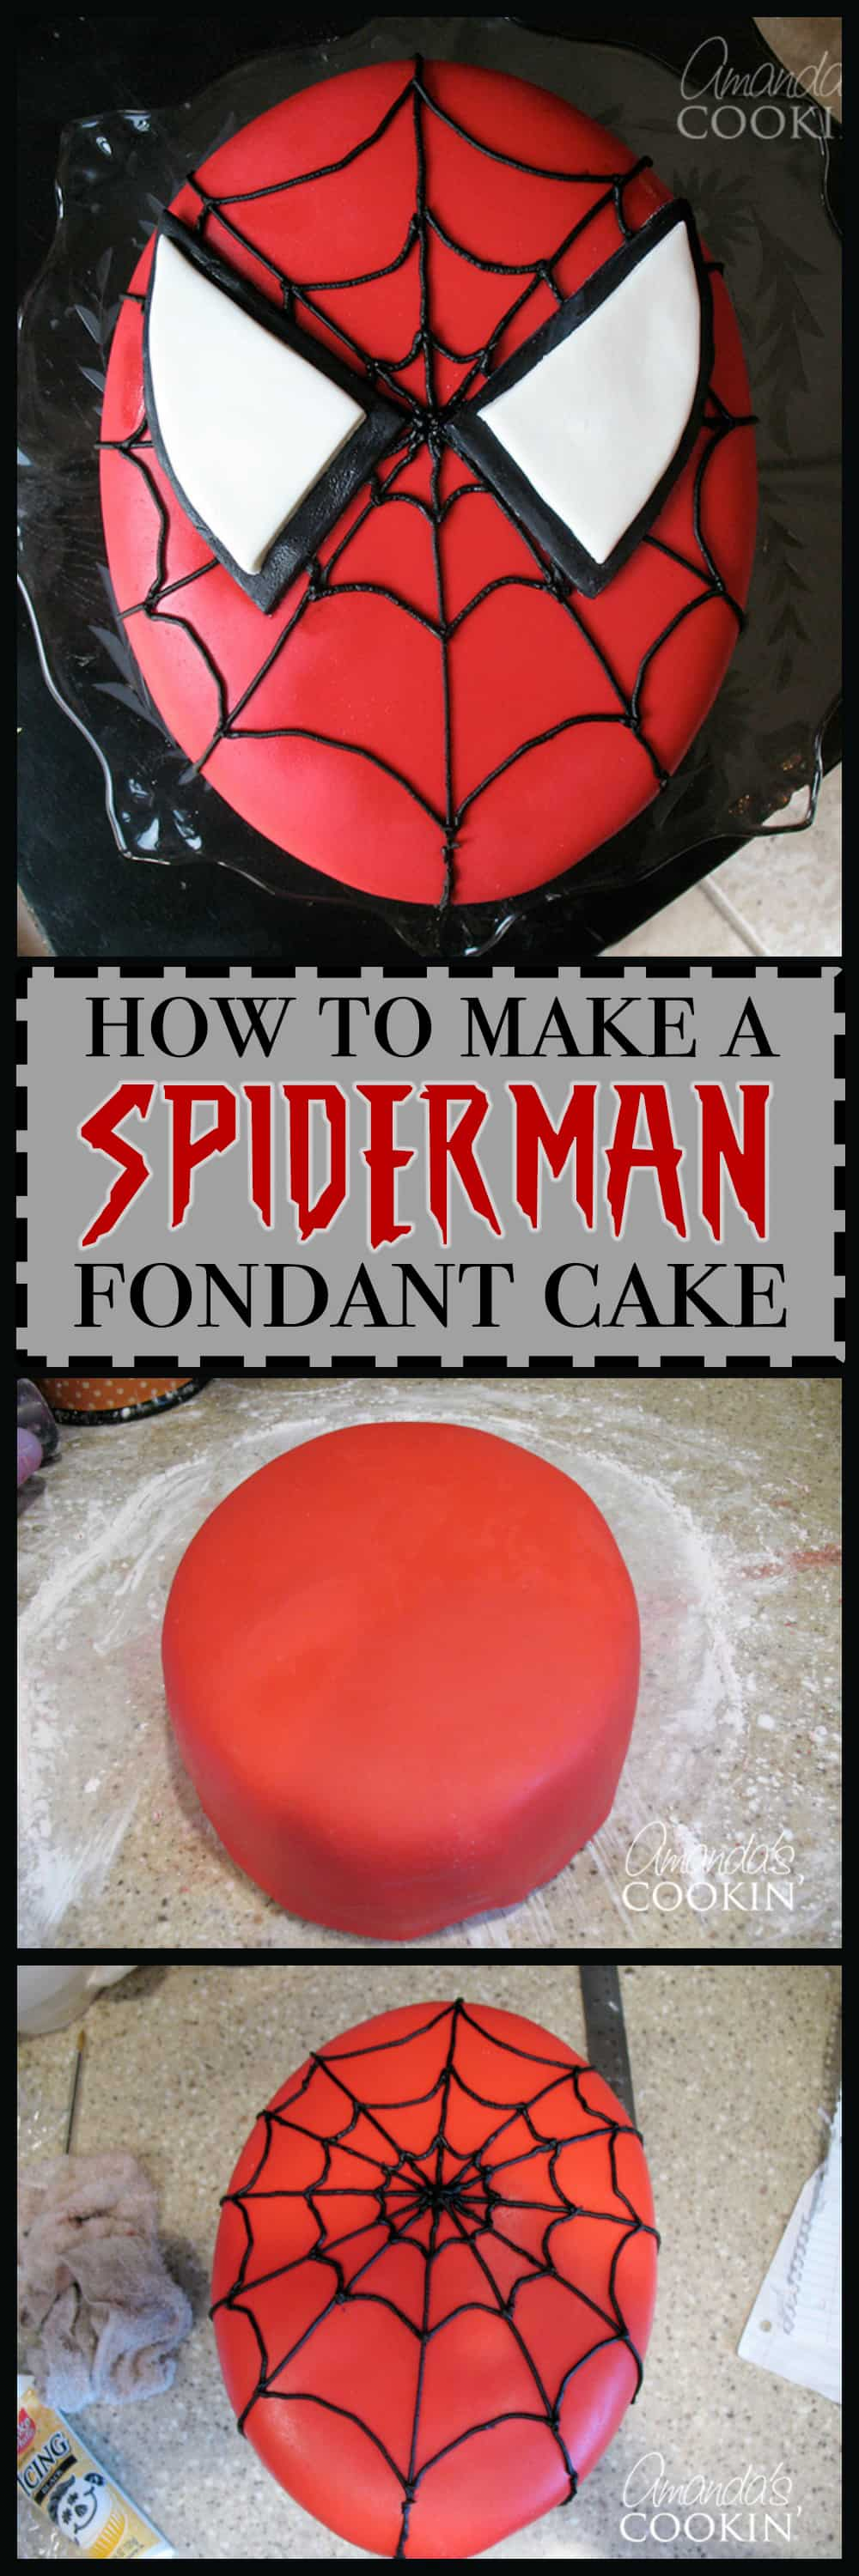 Make an awesome homemade marshmallow fondant Spiderman cake!